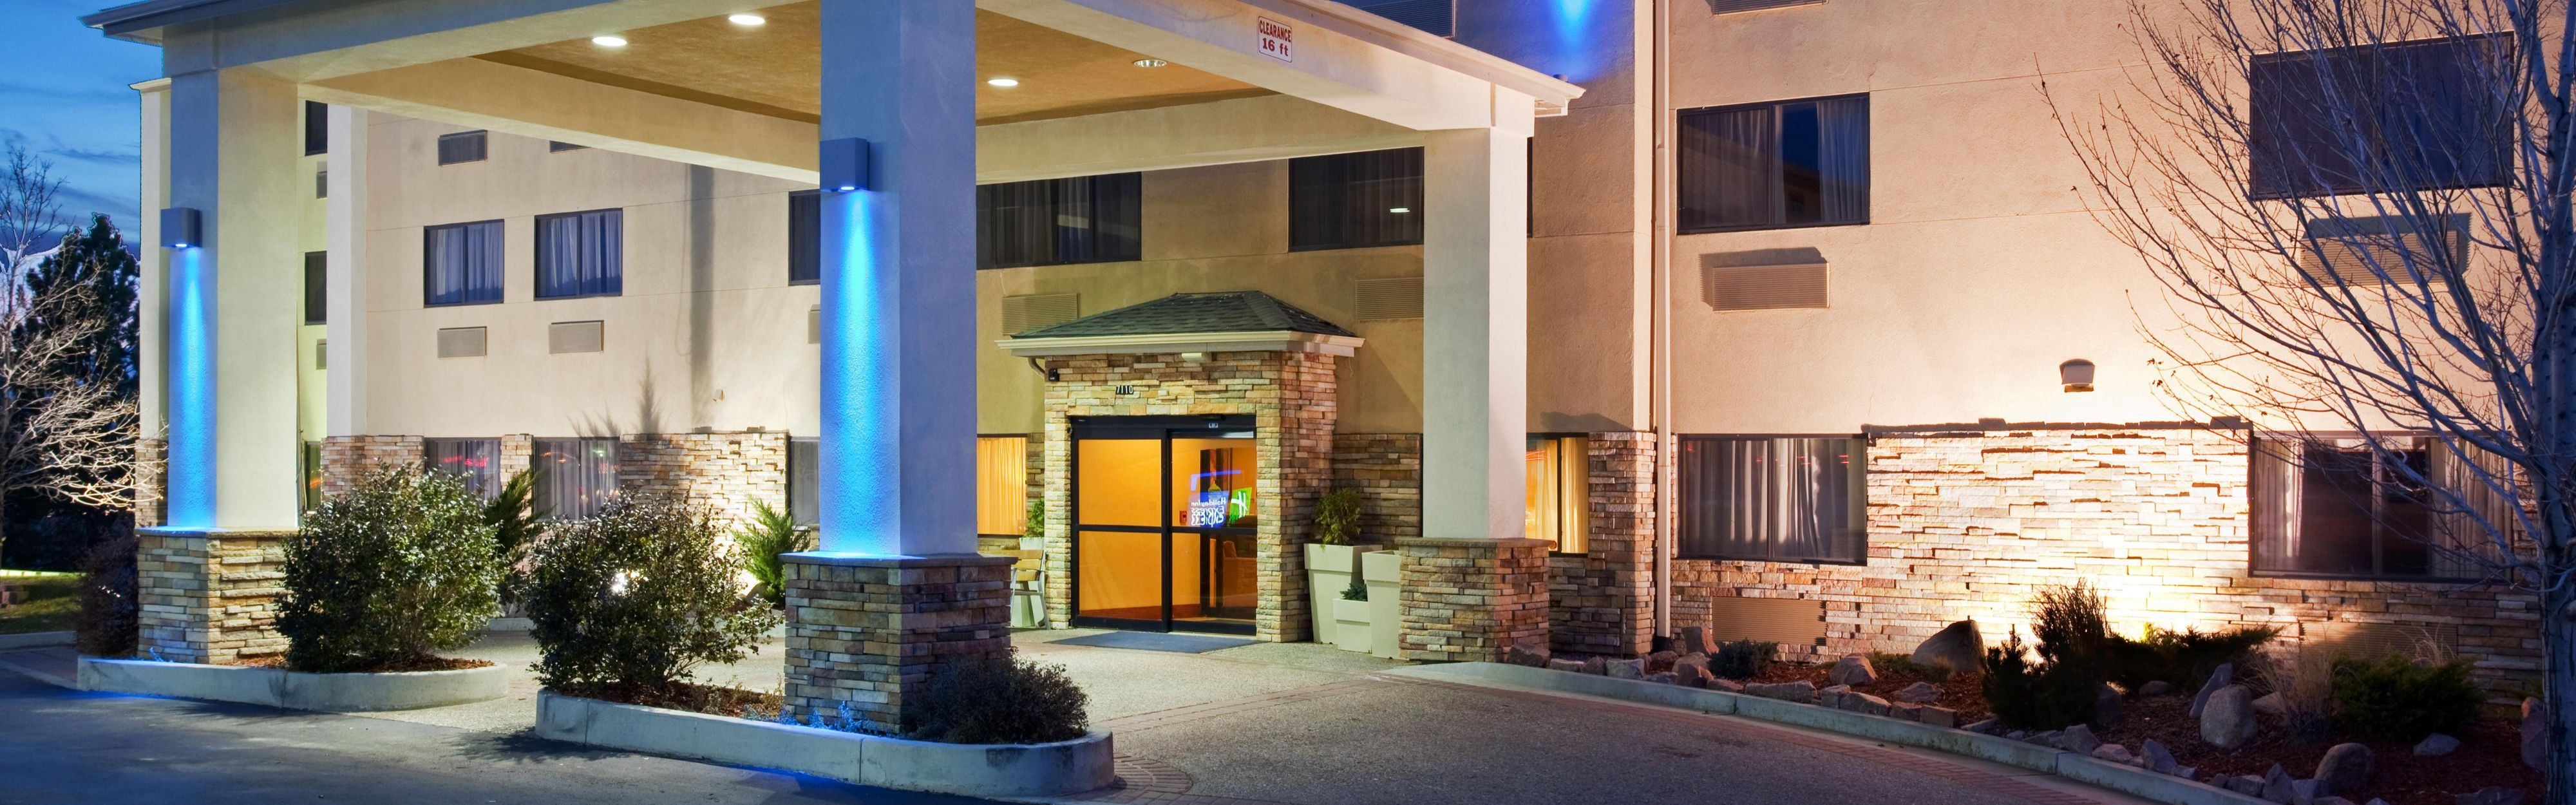 Holiday Inn Express & Suites Colorado Springs North image 0